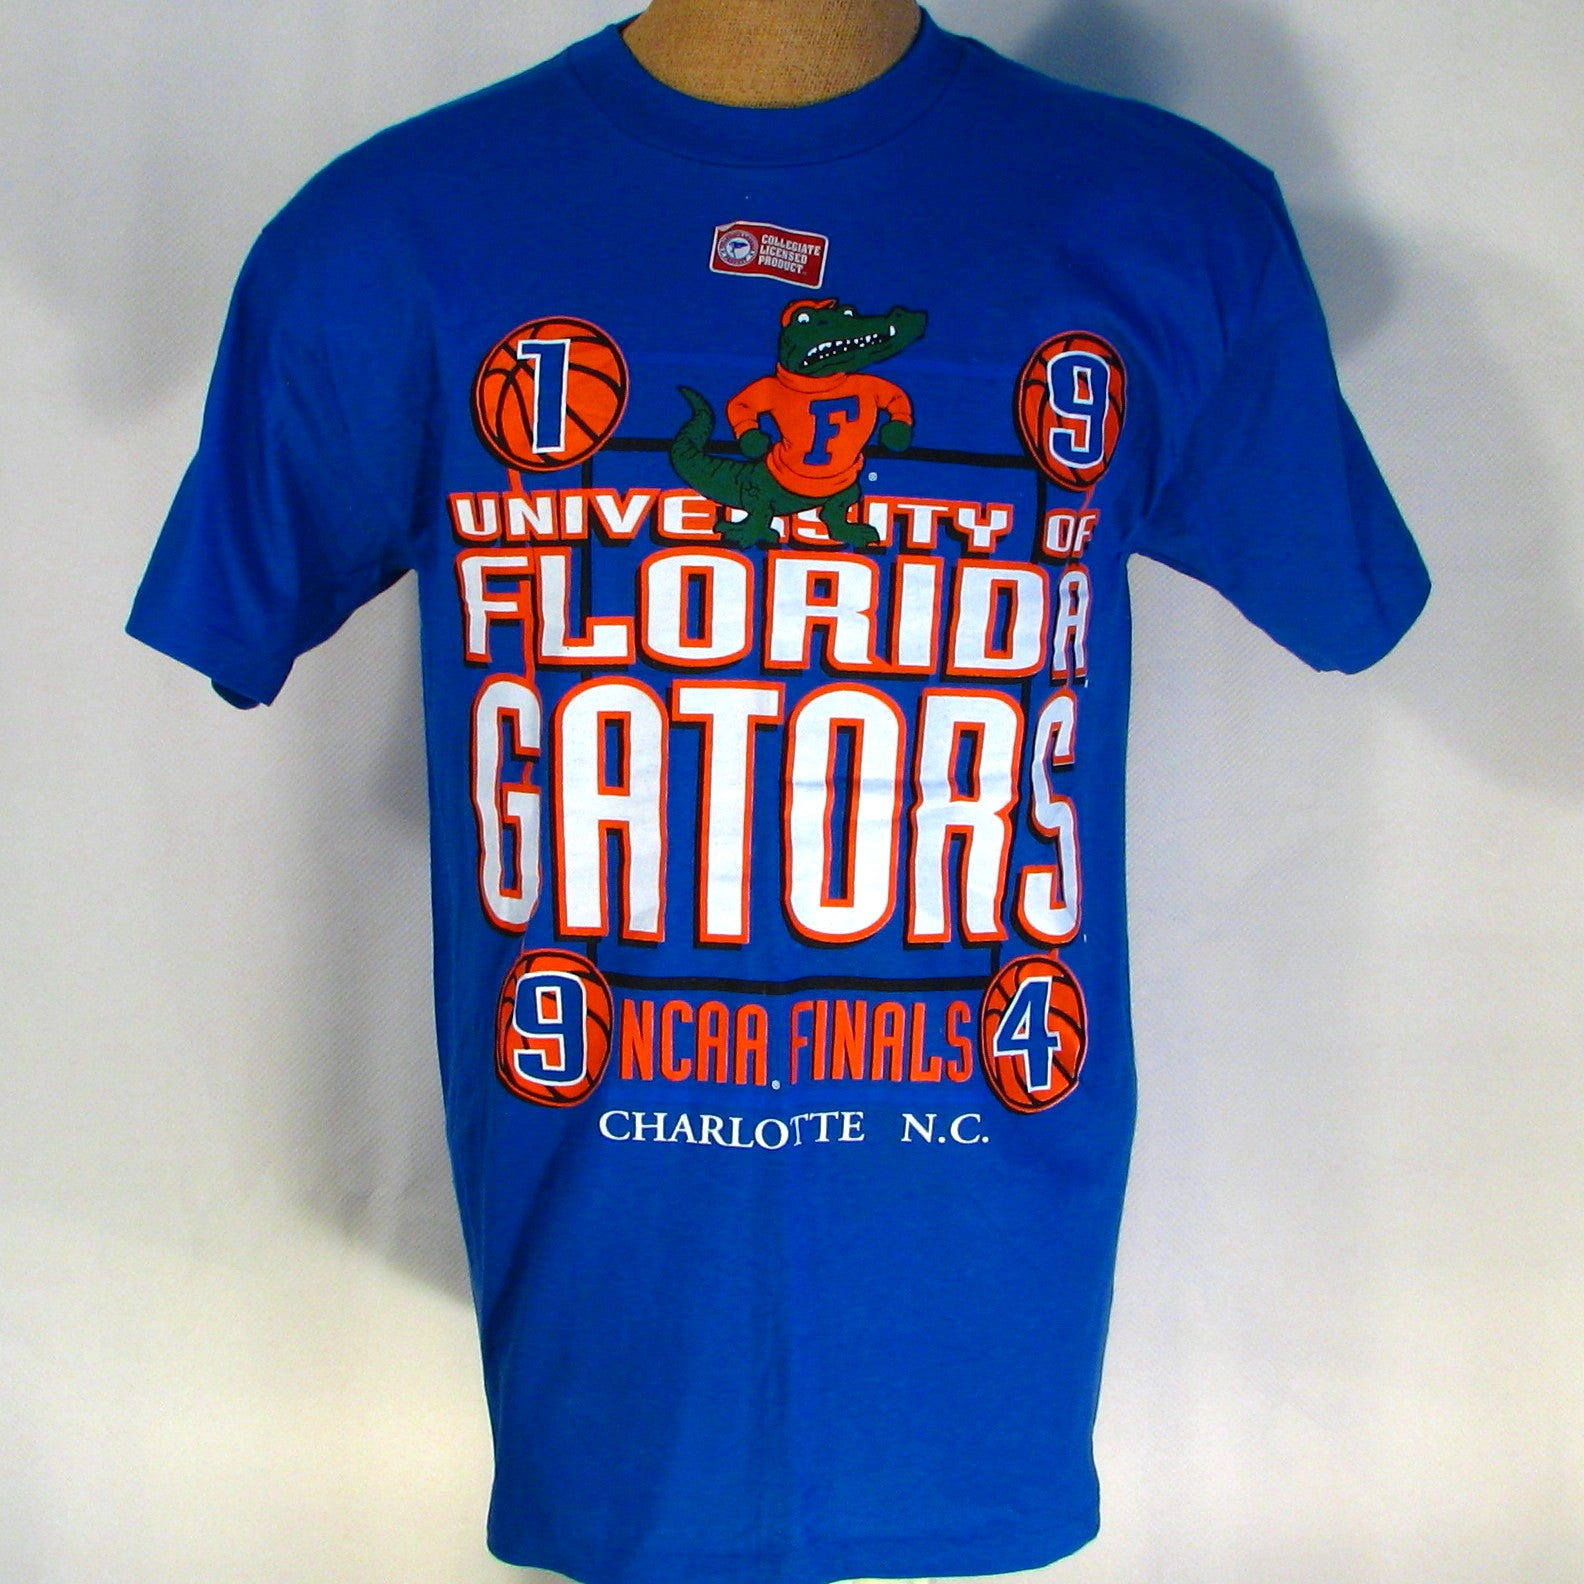 University of Florida Gators T-Shirt